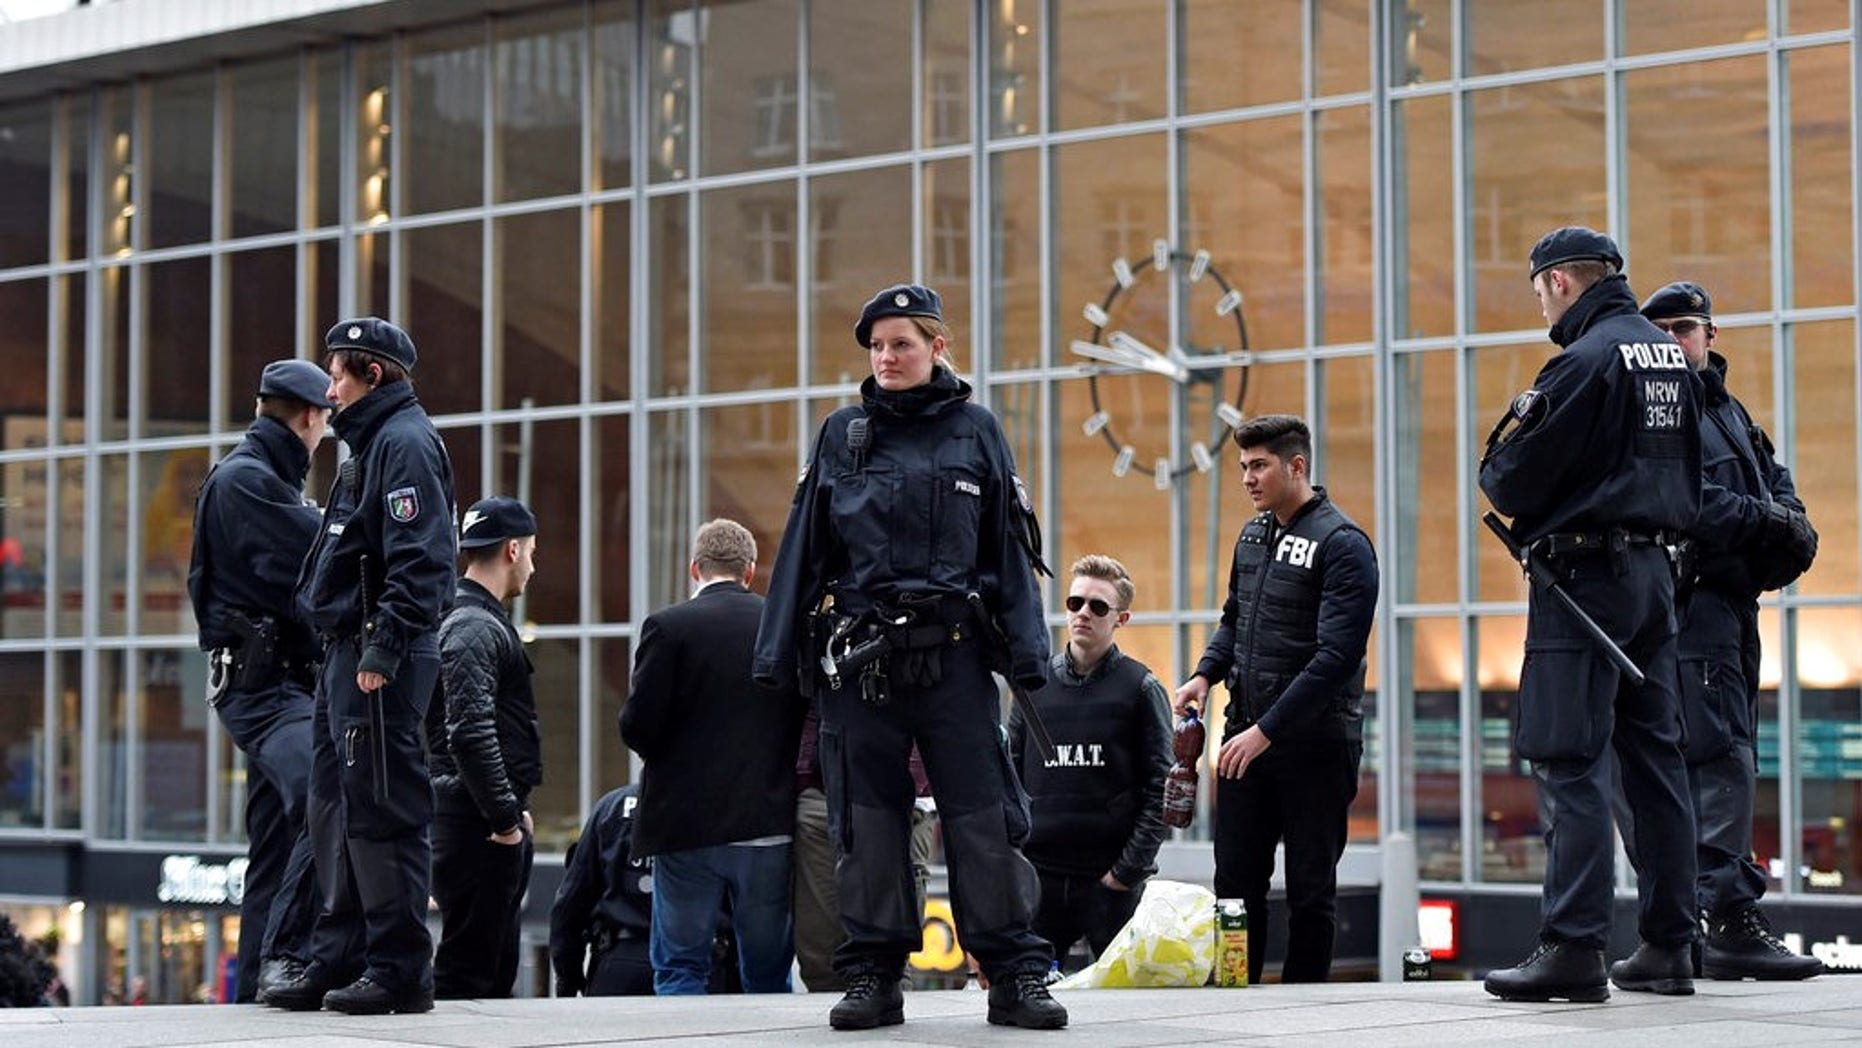 Cologne police said they have closed parts of the western German city's main train station because of a hostage situation. The incident appears to have started Monday at a pharmacy inside the train station.